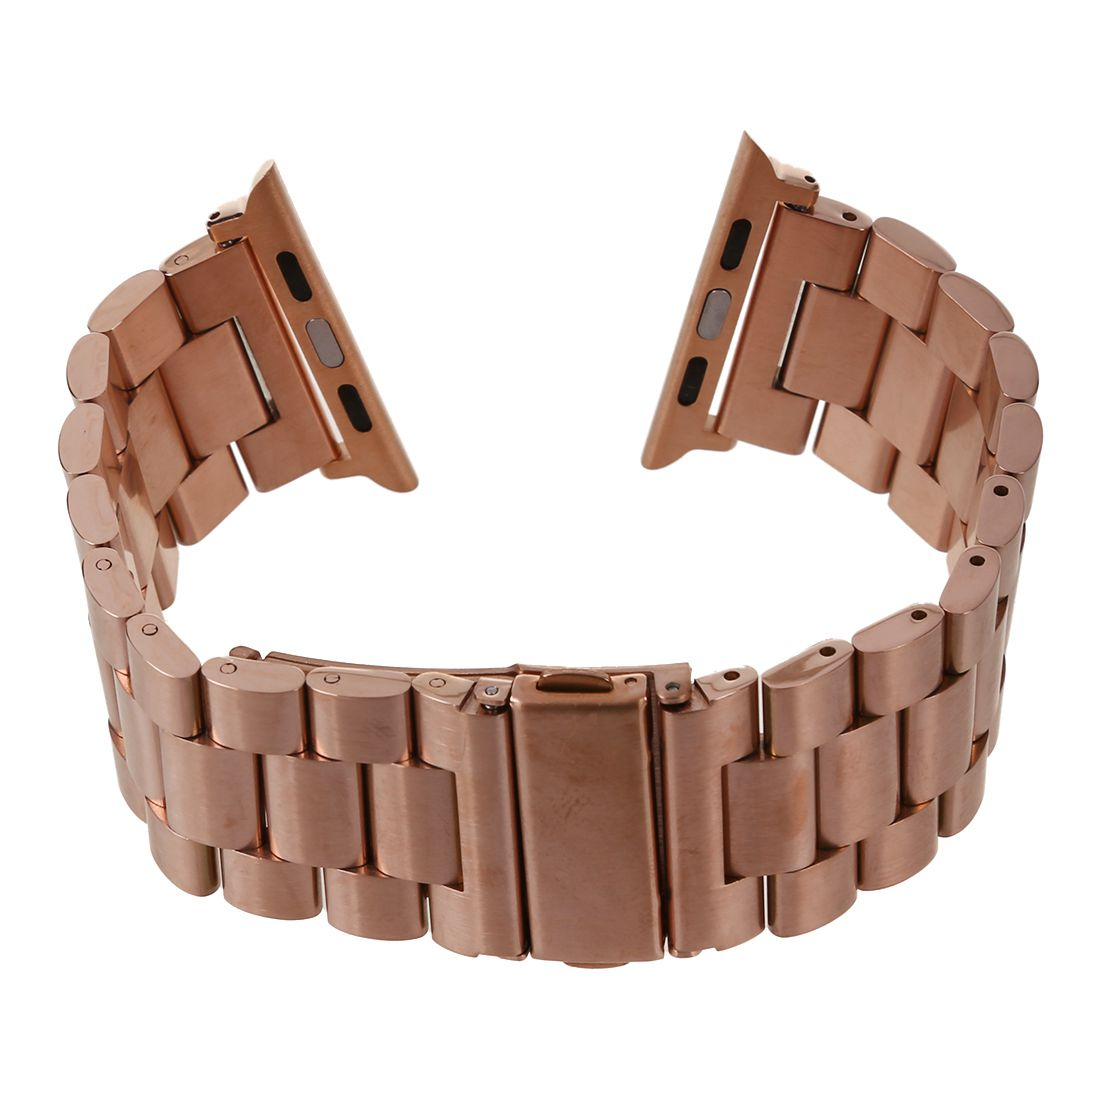 Stainless Steel Metal Strap Band 3 Ball Link Bracelet for Apple Watch iWatch 42mm(Rose Gold) wholesale5pcs stainless steel metal strap band 3 ball link bracelet for apple watch i watch 42mm rose gold